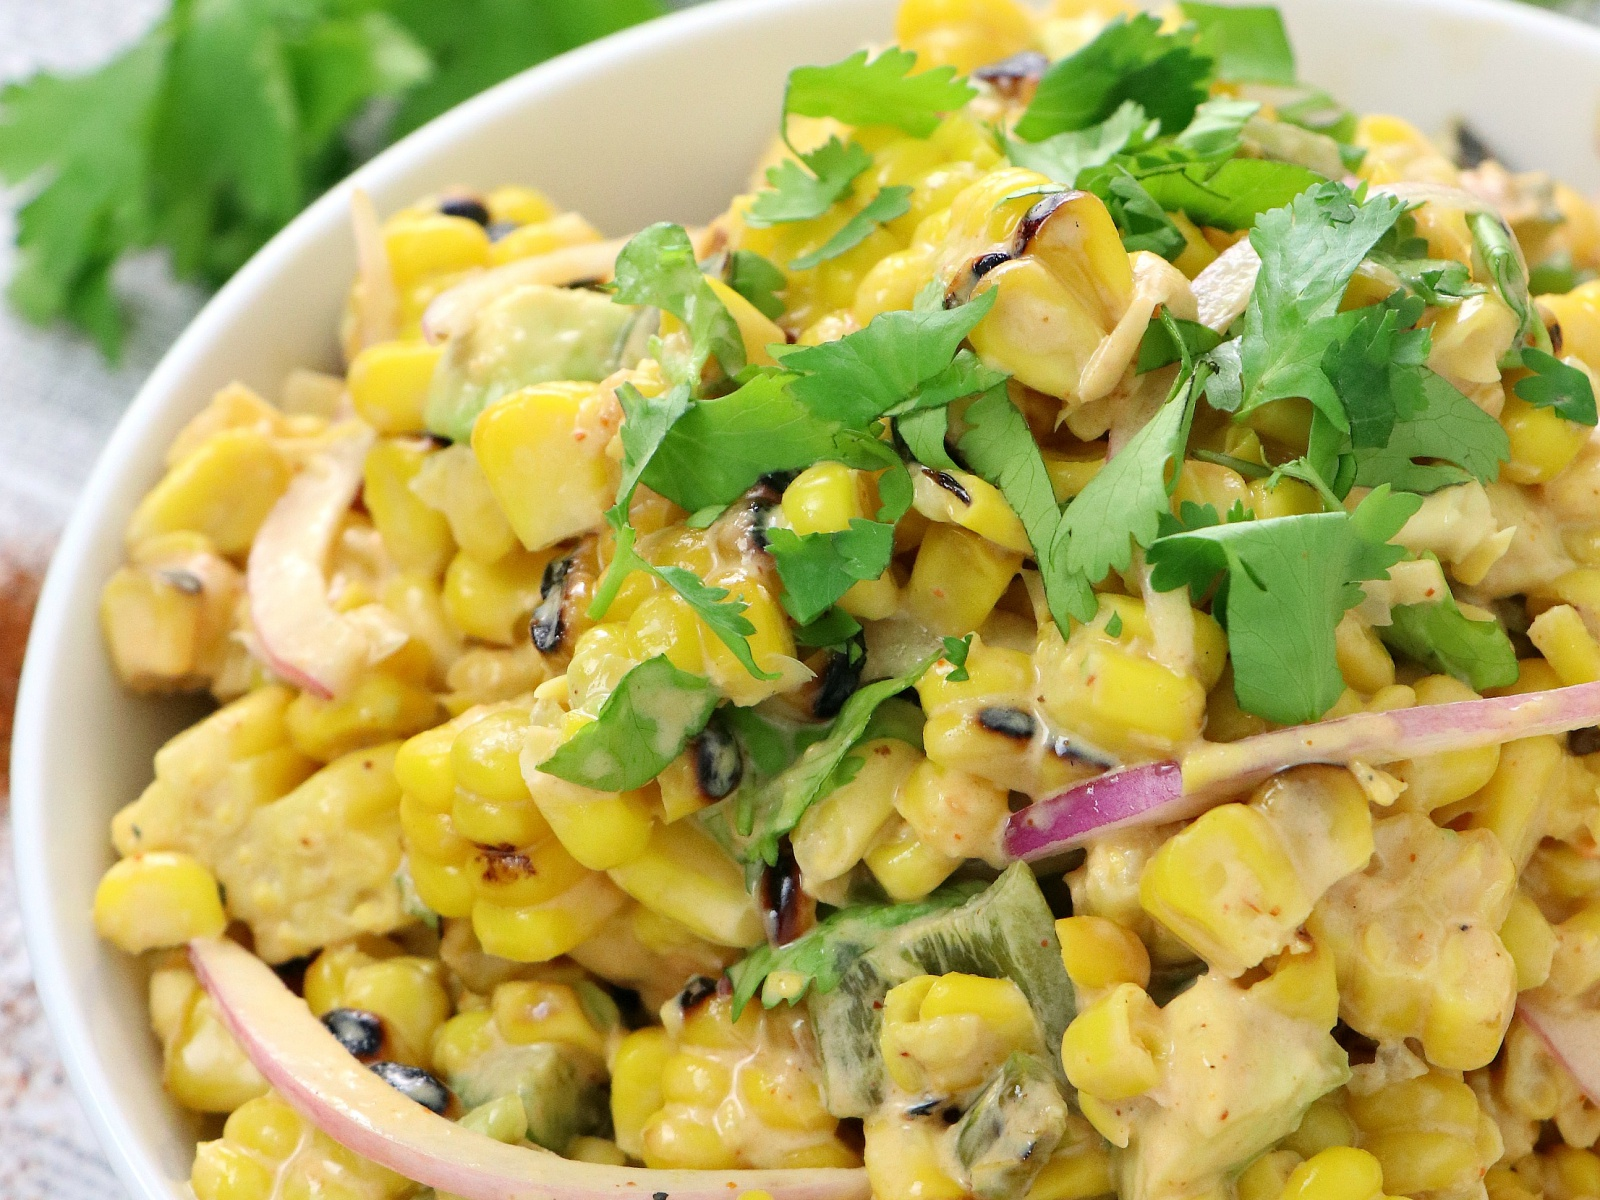 Grilled Corn Salad With Jalapeno and Avocado